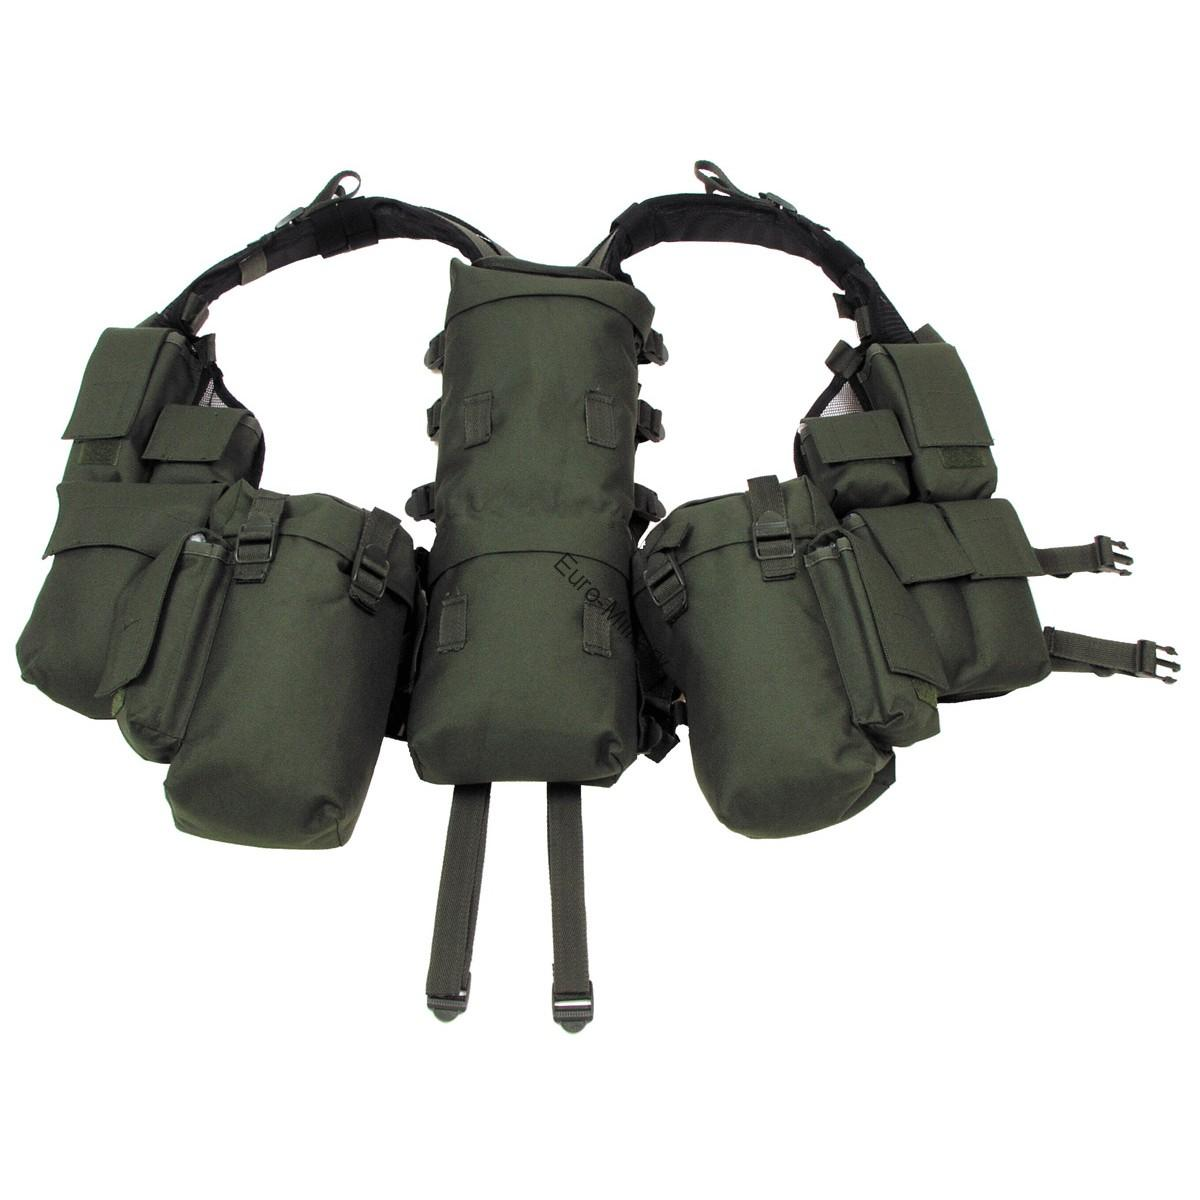 Military Spec Ops Tactical Vest with Various Pockets - OD Green